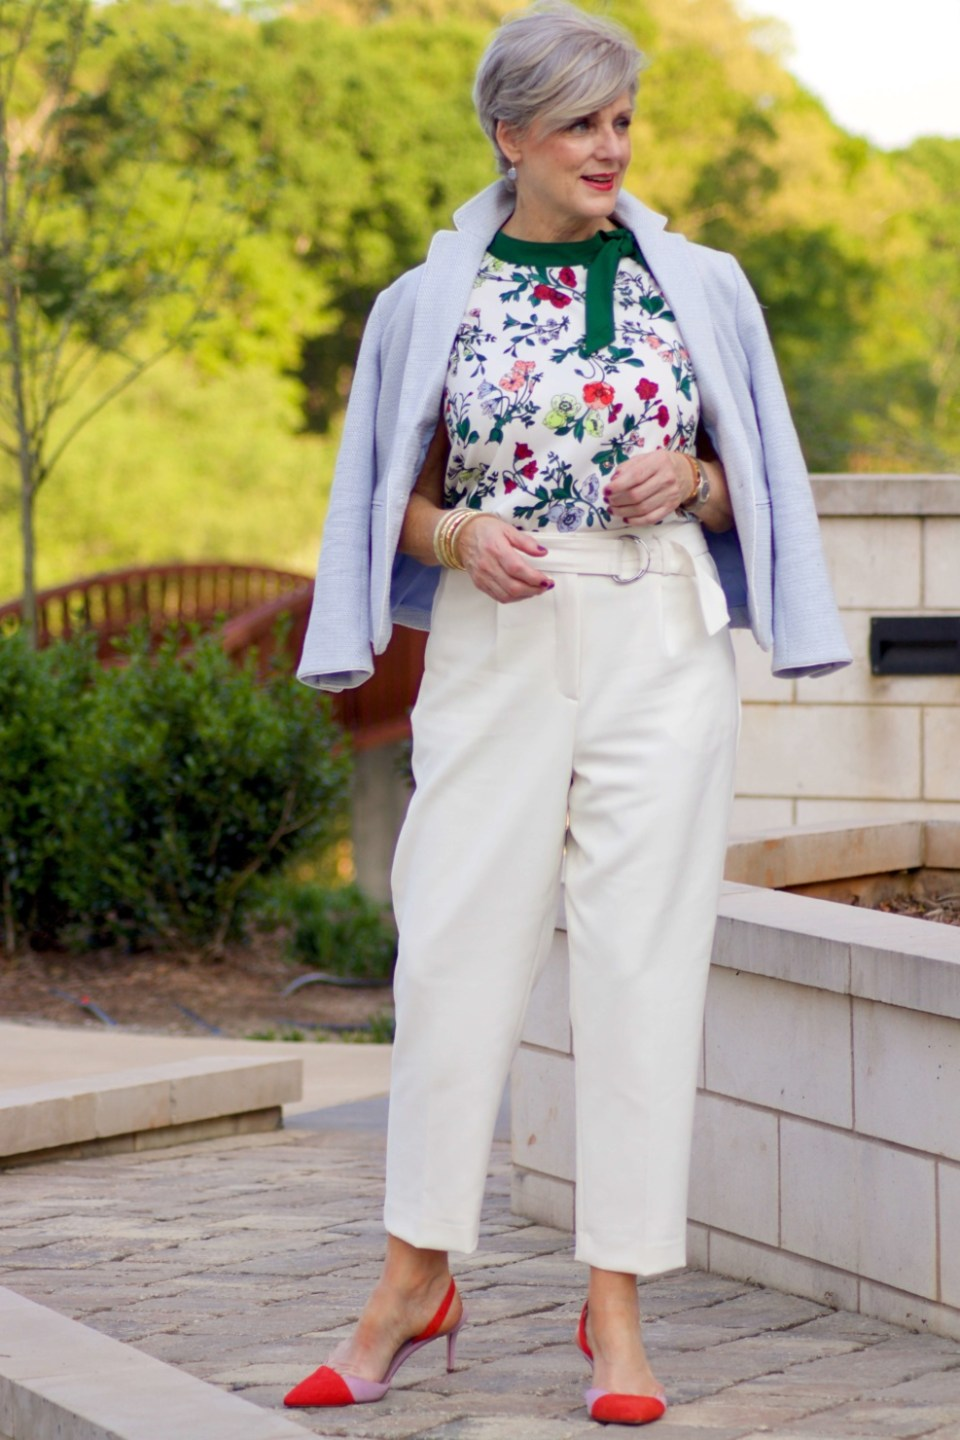 beth from Style at a Certain Age wears Ann Taylor floral sleeveless tie neck blouse, pleated pants, textured blazer, and suede slingbacks